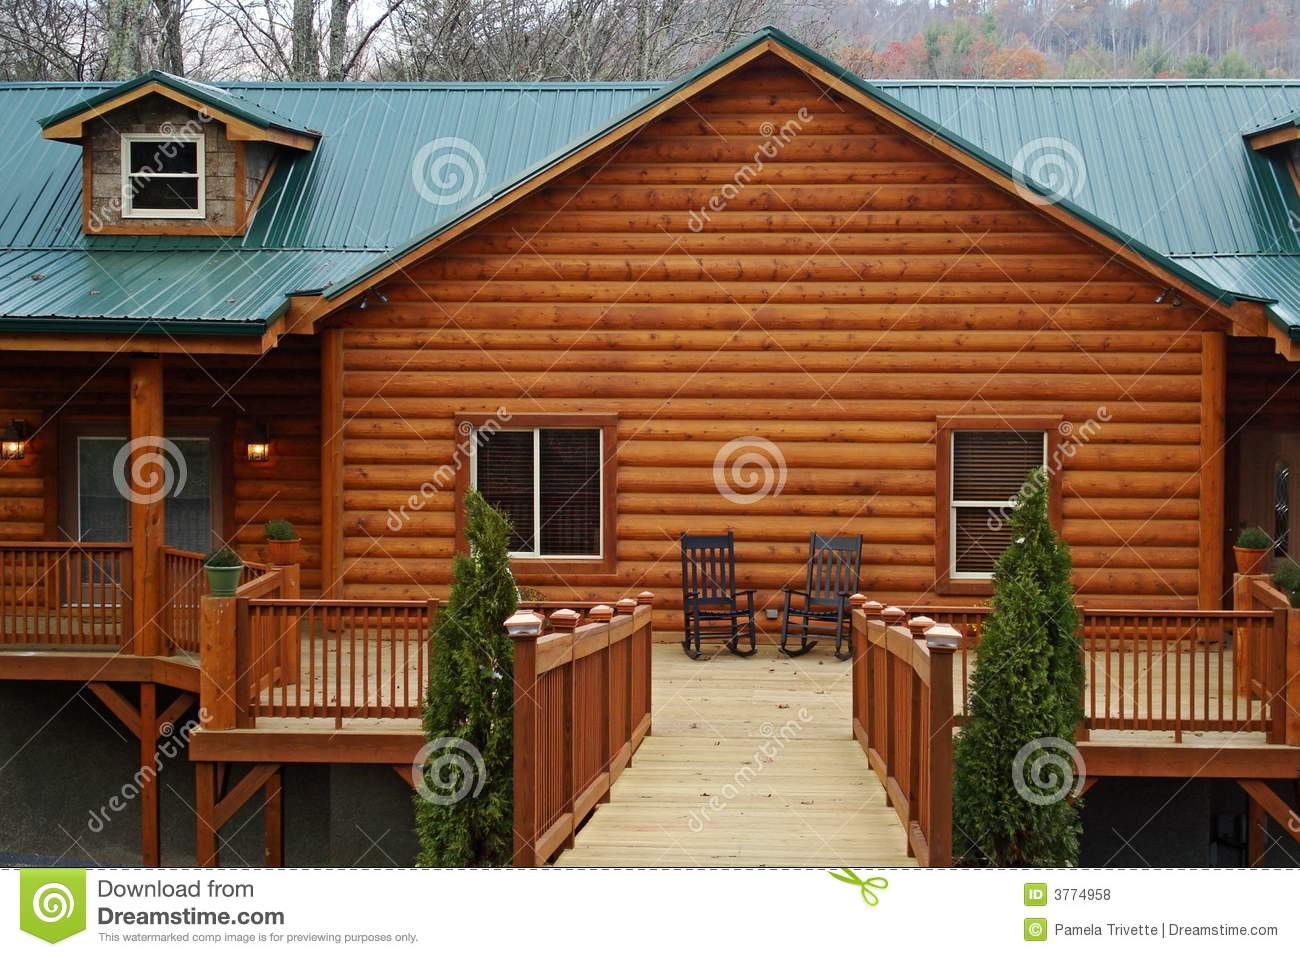 Wonderful image of Log Cabin Home Royalty Free Stock Photos Image: 3774958 with #7C3919 color and 1300x957 pixels